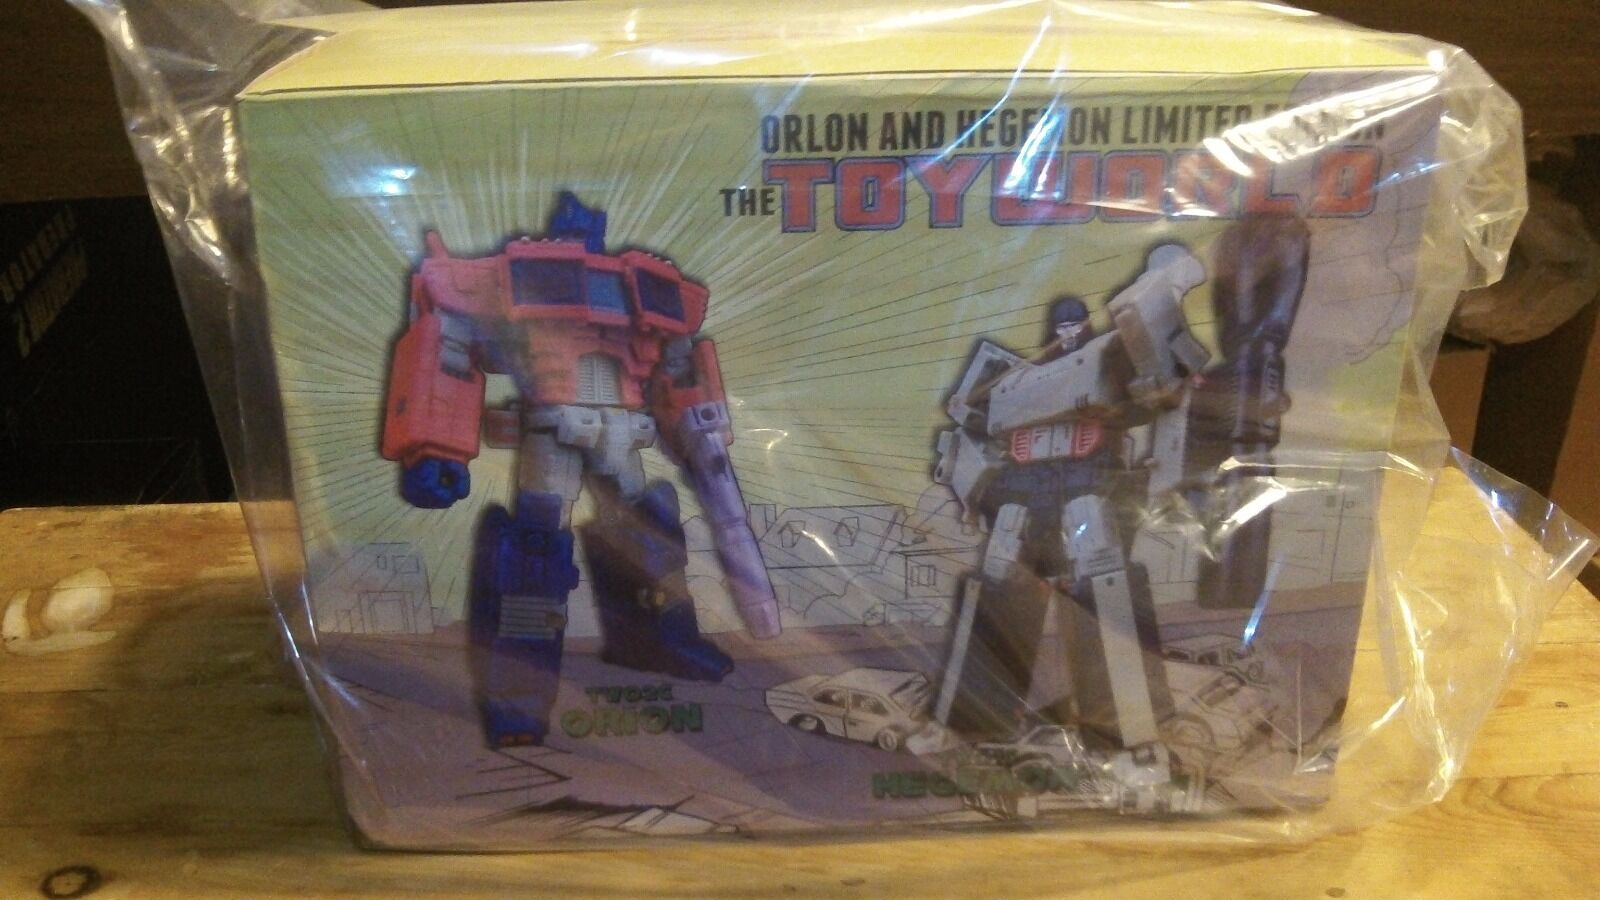 Transformers Transformers Transformers Toyworld Limited Edition Orion Vs hegemon Nuevo b22c7b